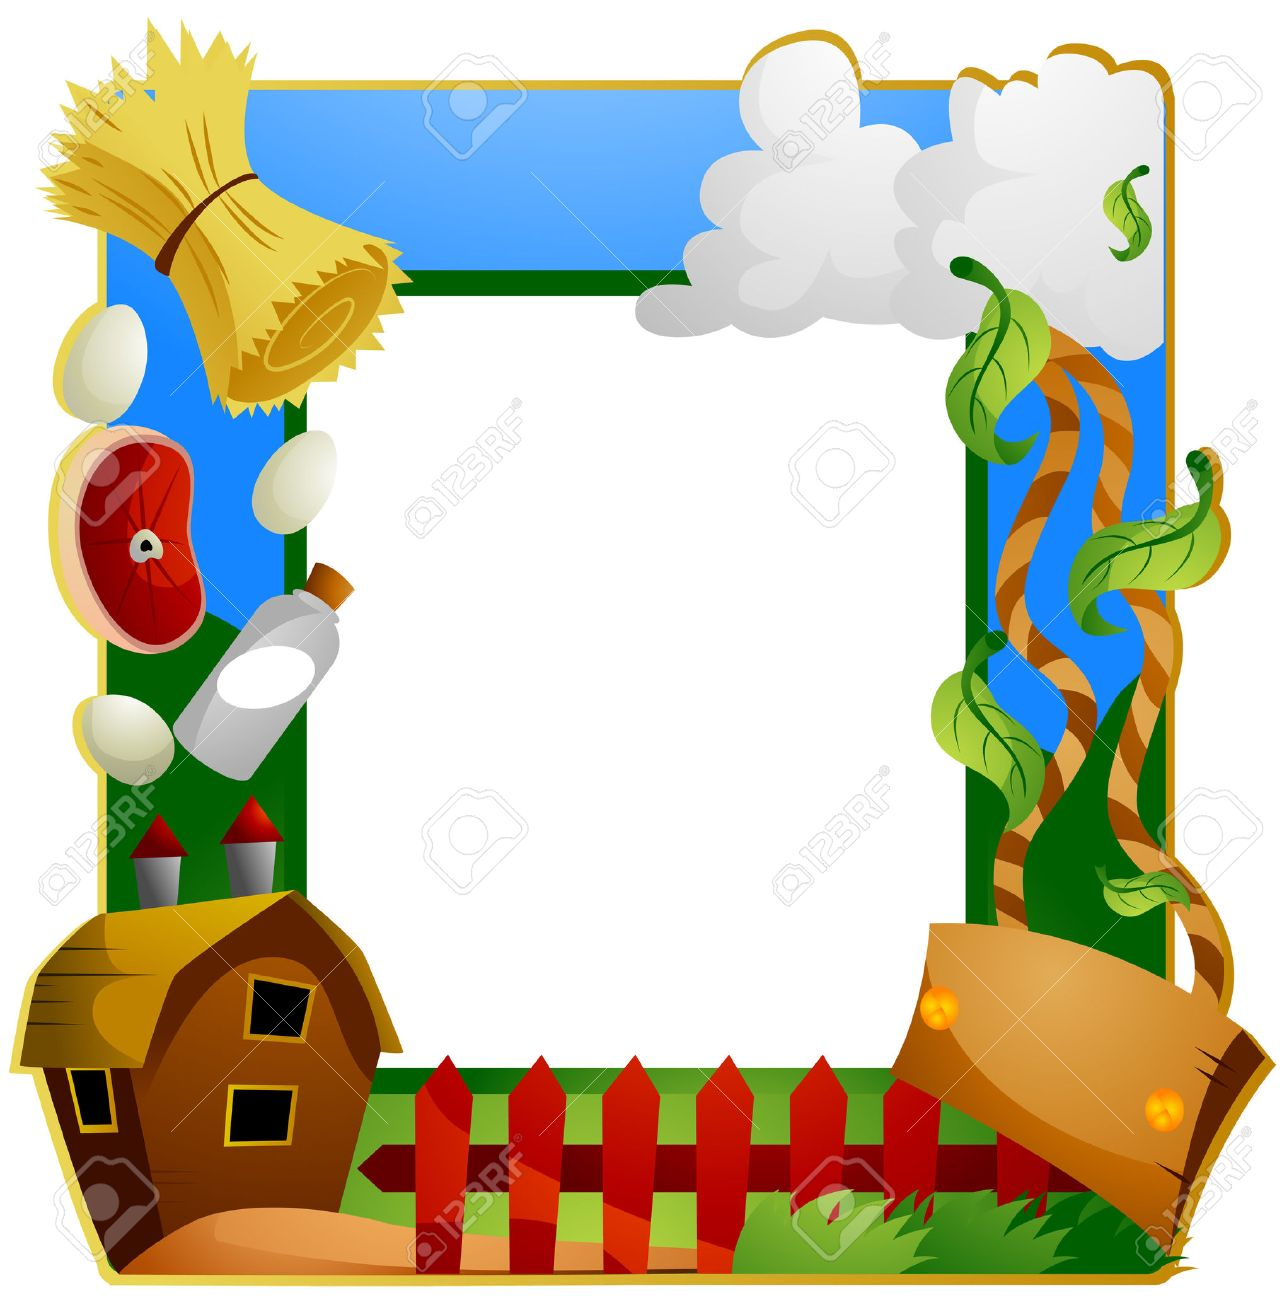 Farm Frame With Clipping Path Royalty Free Cliparts, Vectors, And ...